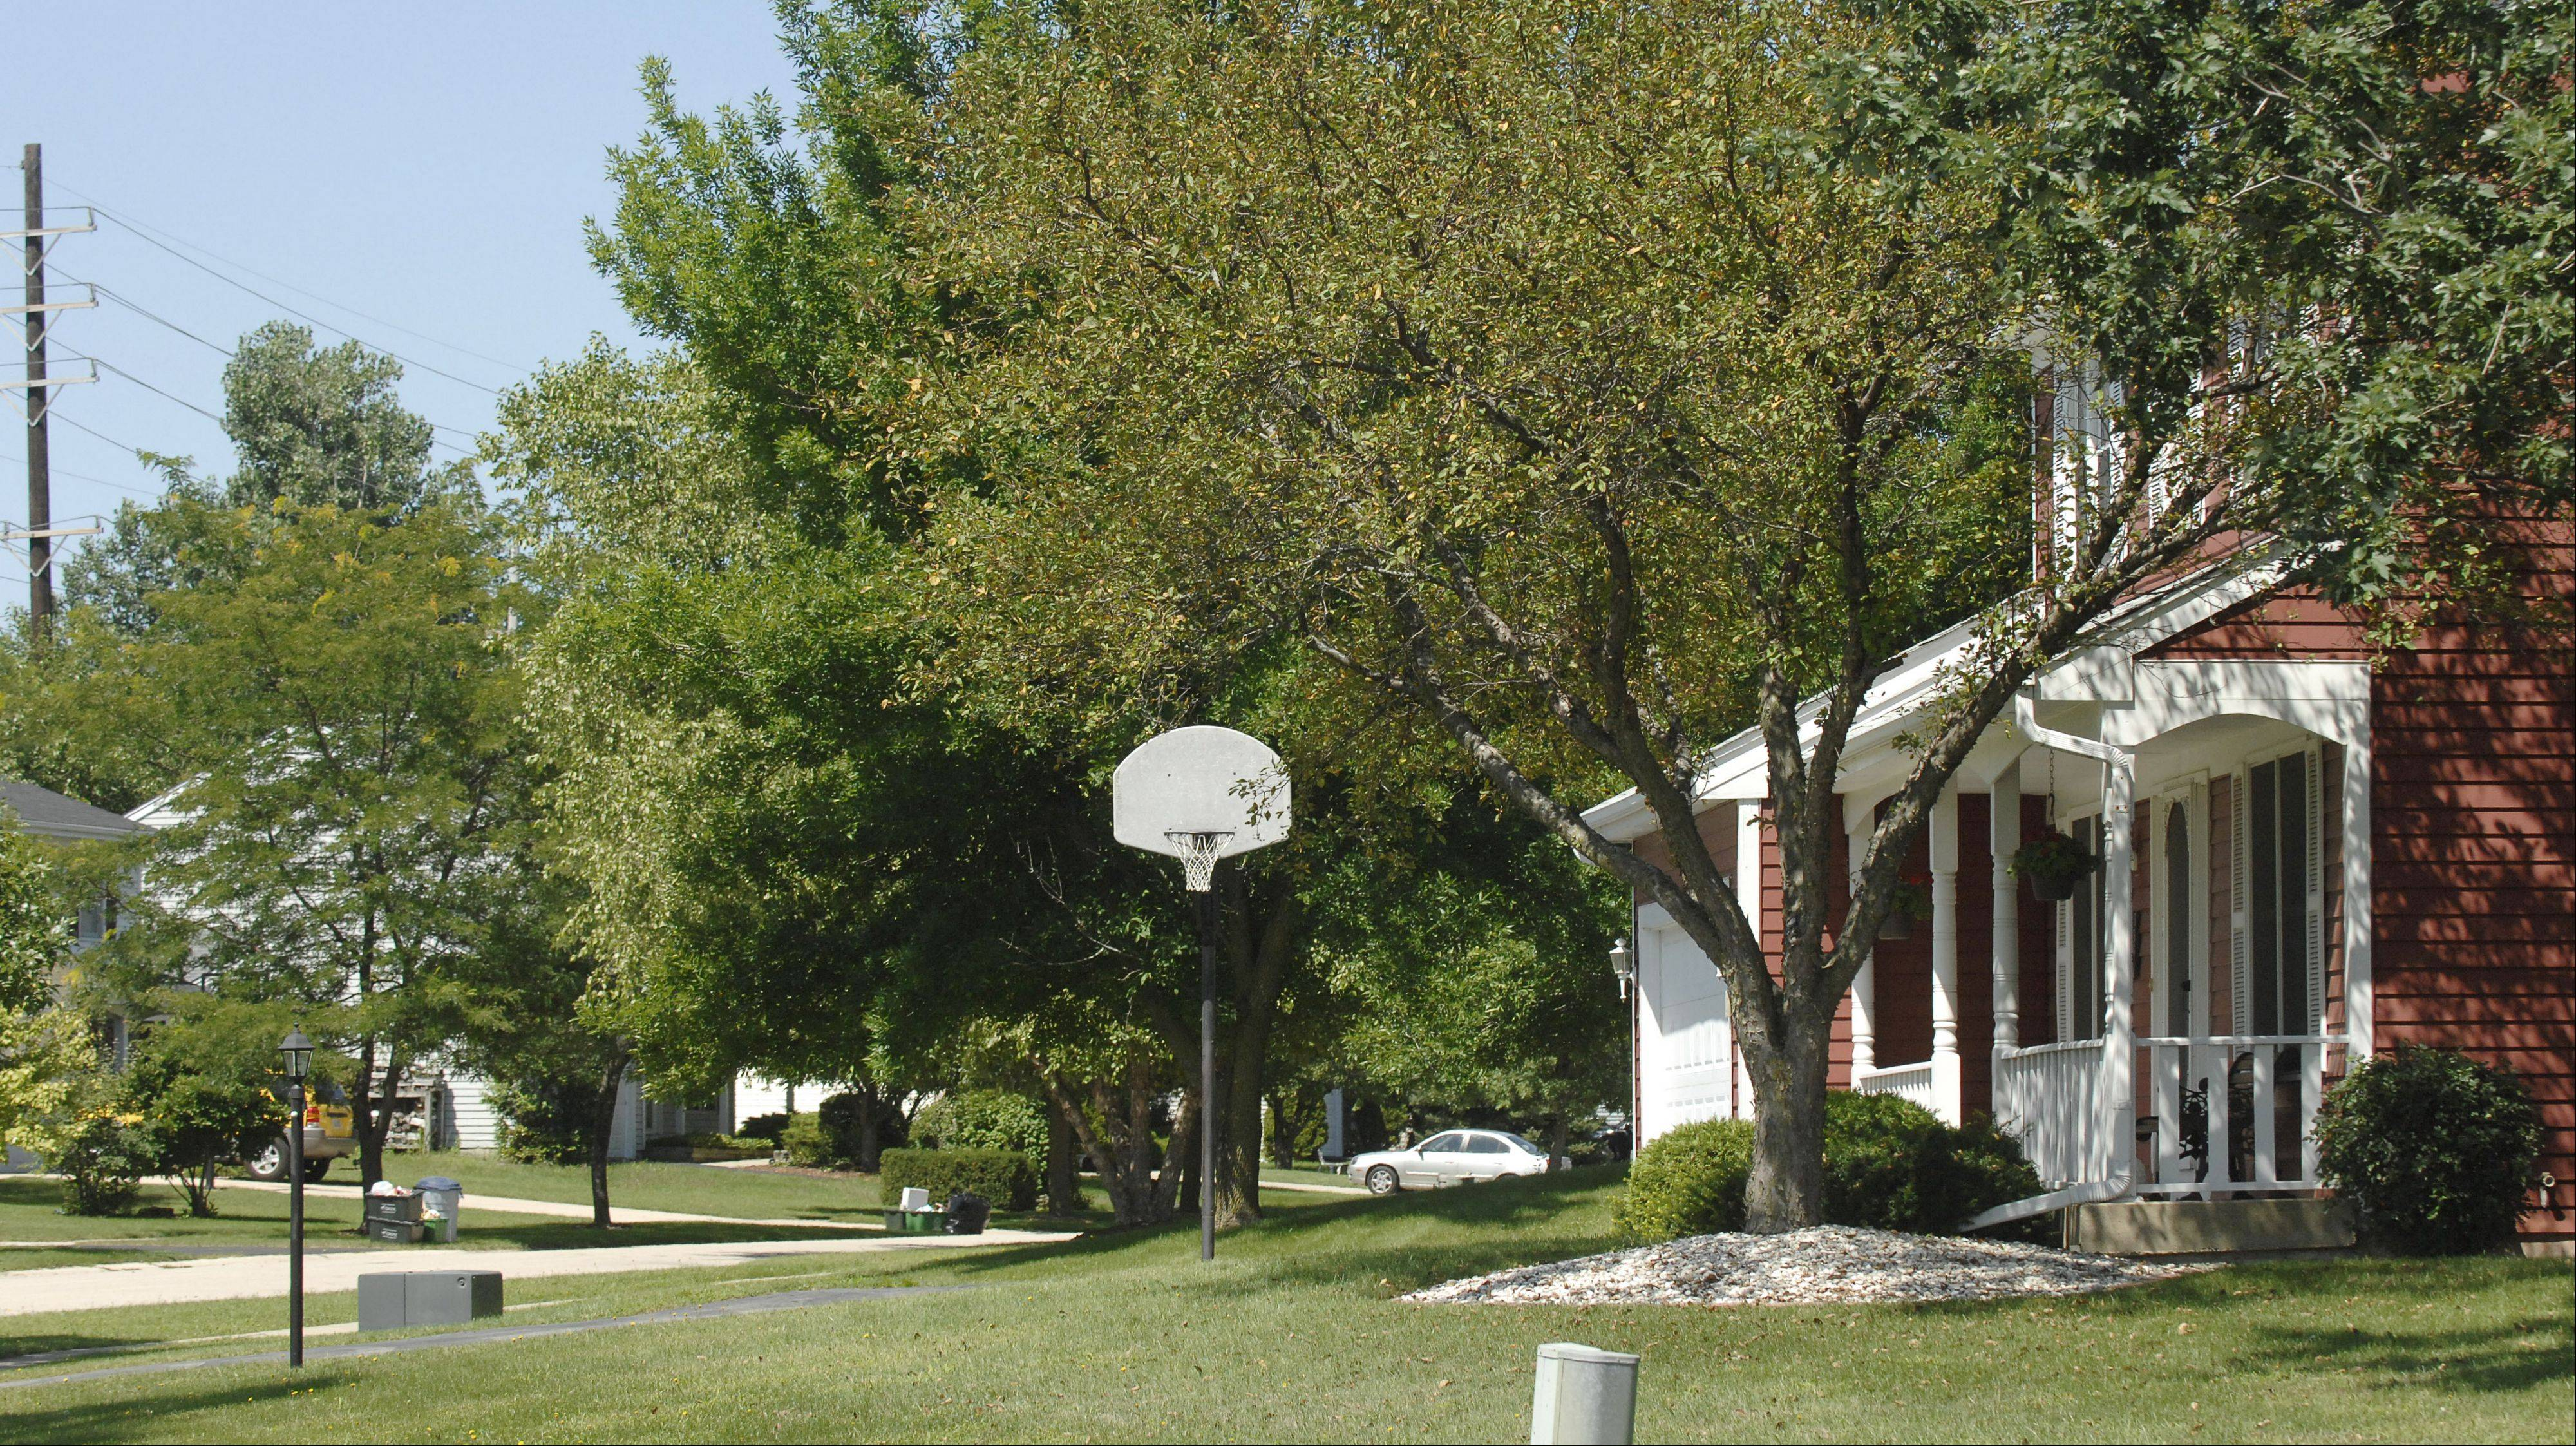 Batavia's Cherry Park neighborhood is close to shopping and area parks and forest preserves.